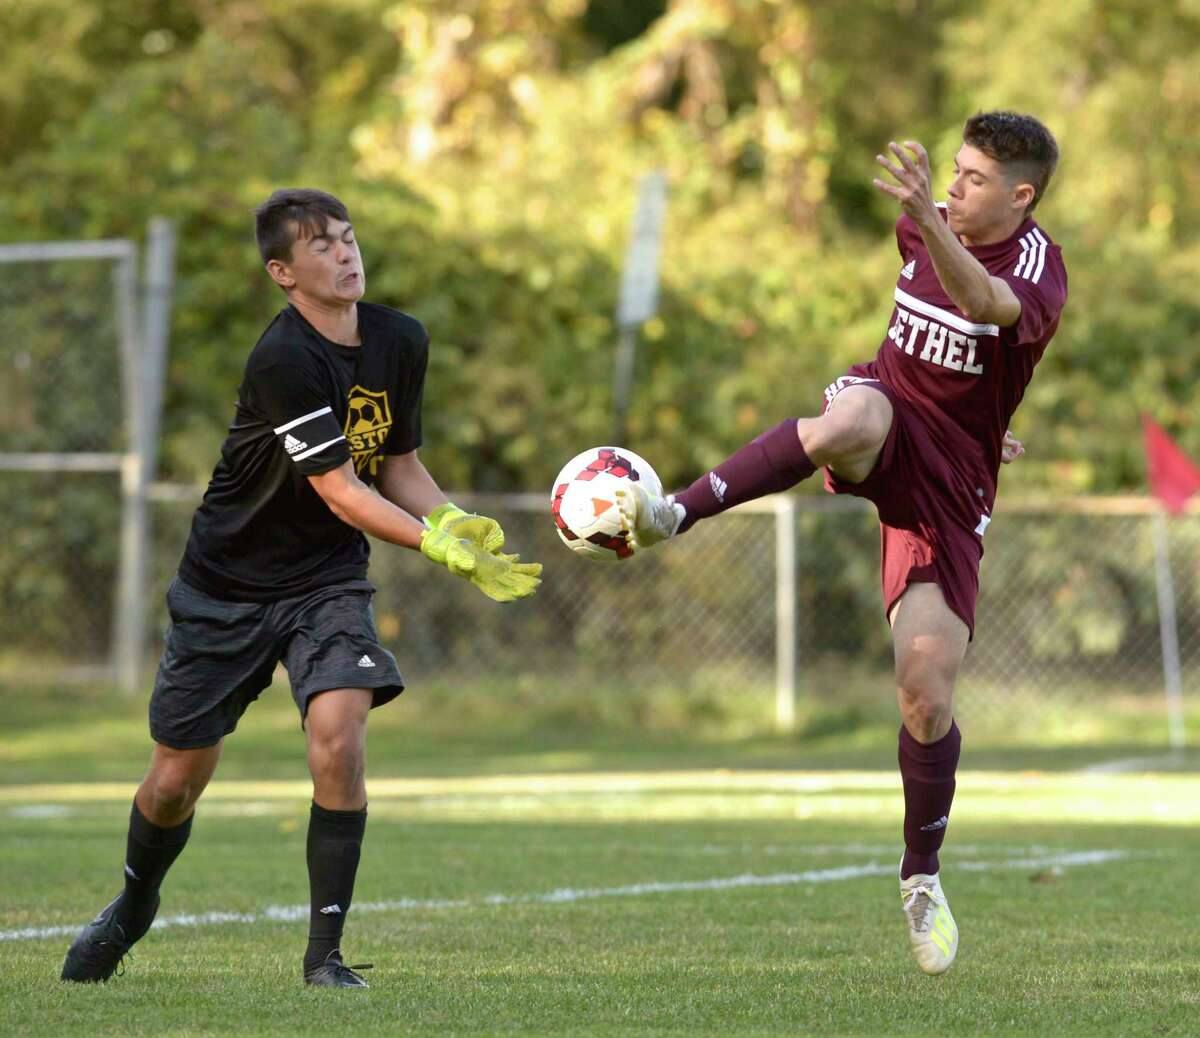 Weston keeper Devin Riley (1) tries to get to the ball before Bethel's Bryan Osebio (7) in their boys soccer game on Sept. 24 at Rourke Field in Bethel. Osebio was named to the All-New England boys soccer team on Thursday.